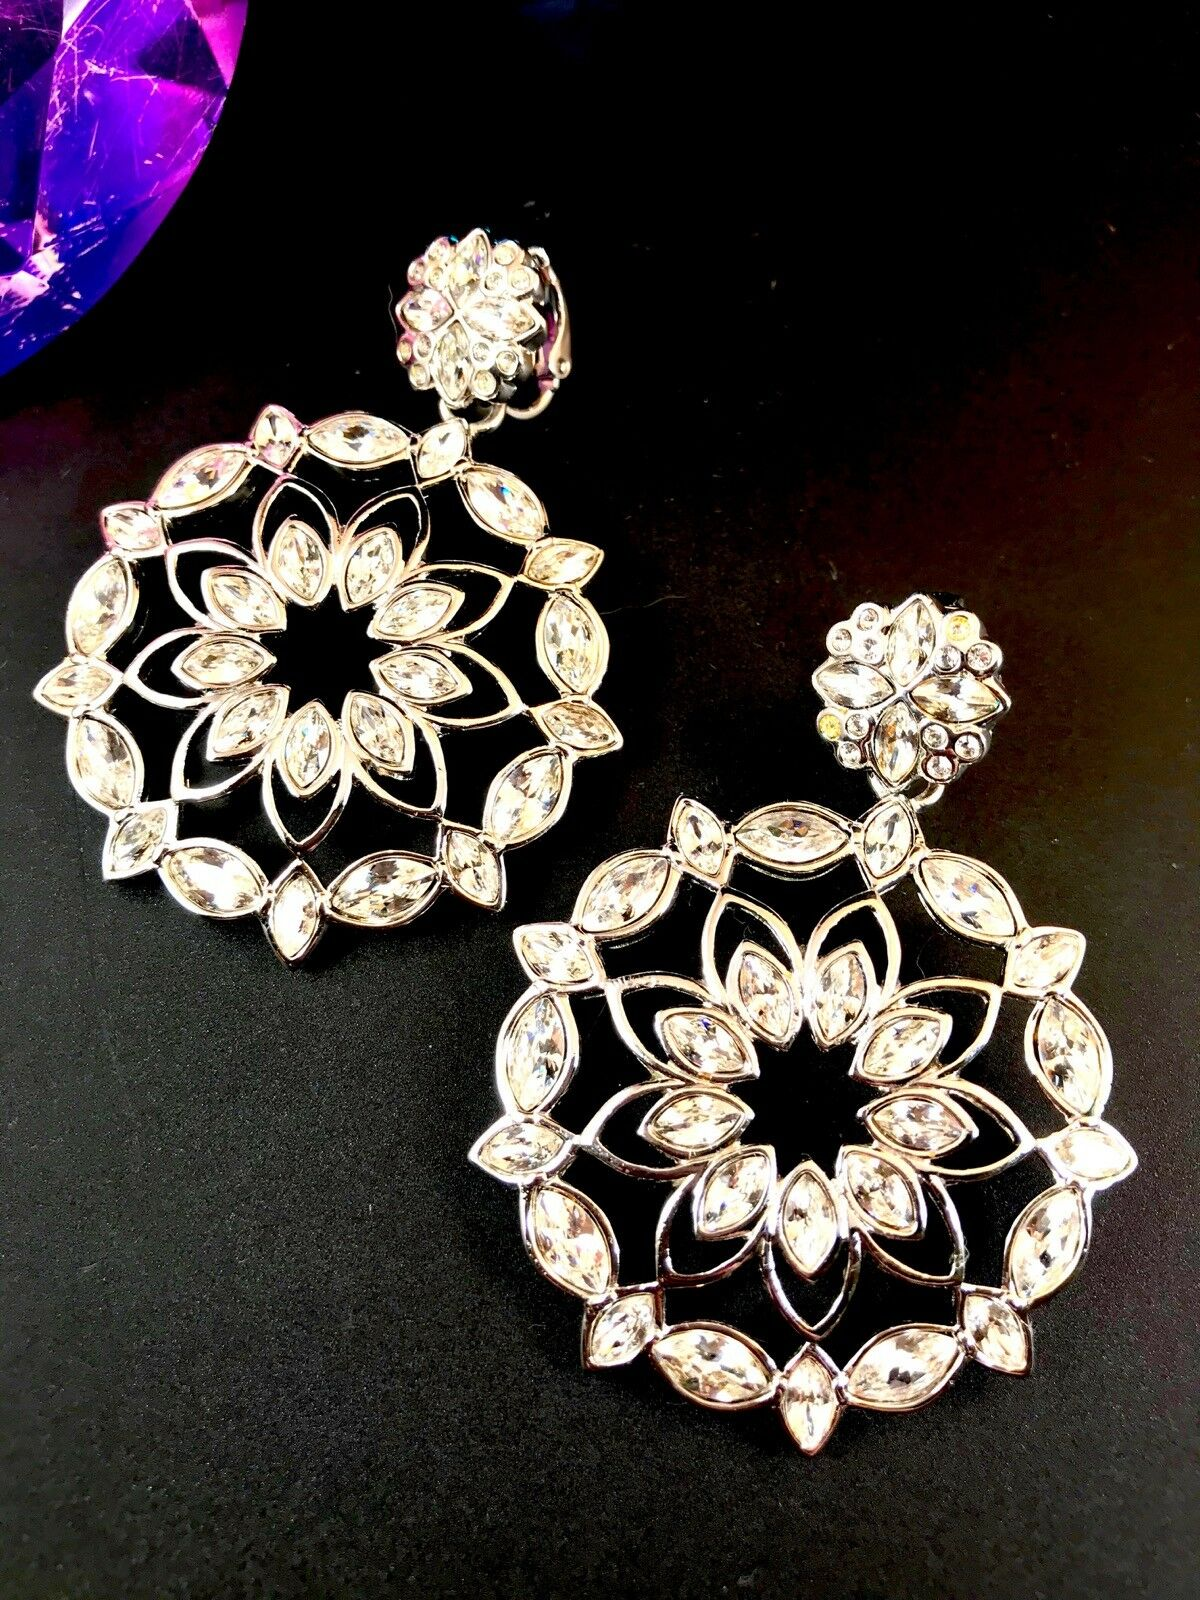 PERFECT WINTER HOLIDAY SWAROVSKI RHODIUM RHINESTONE SNOWFLAKE DANGLE EARRINGS